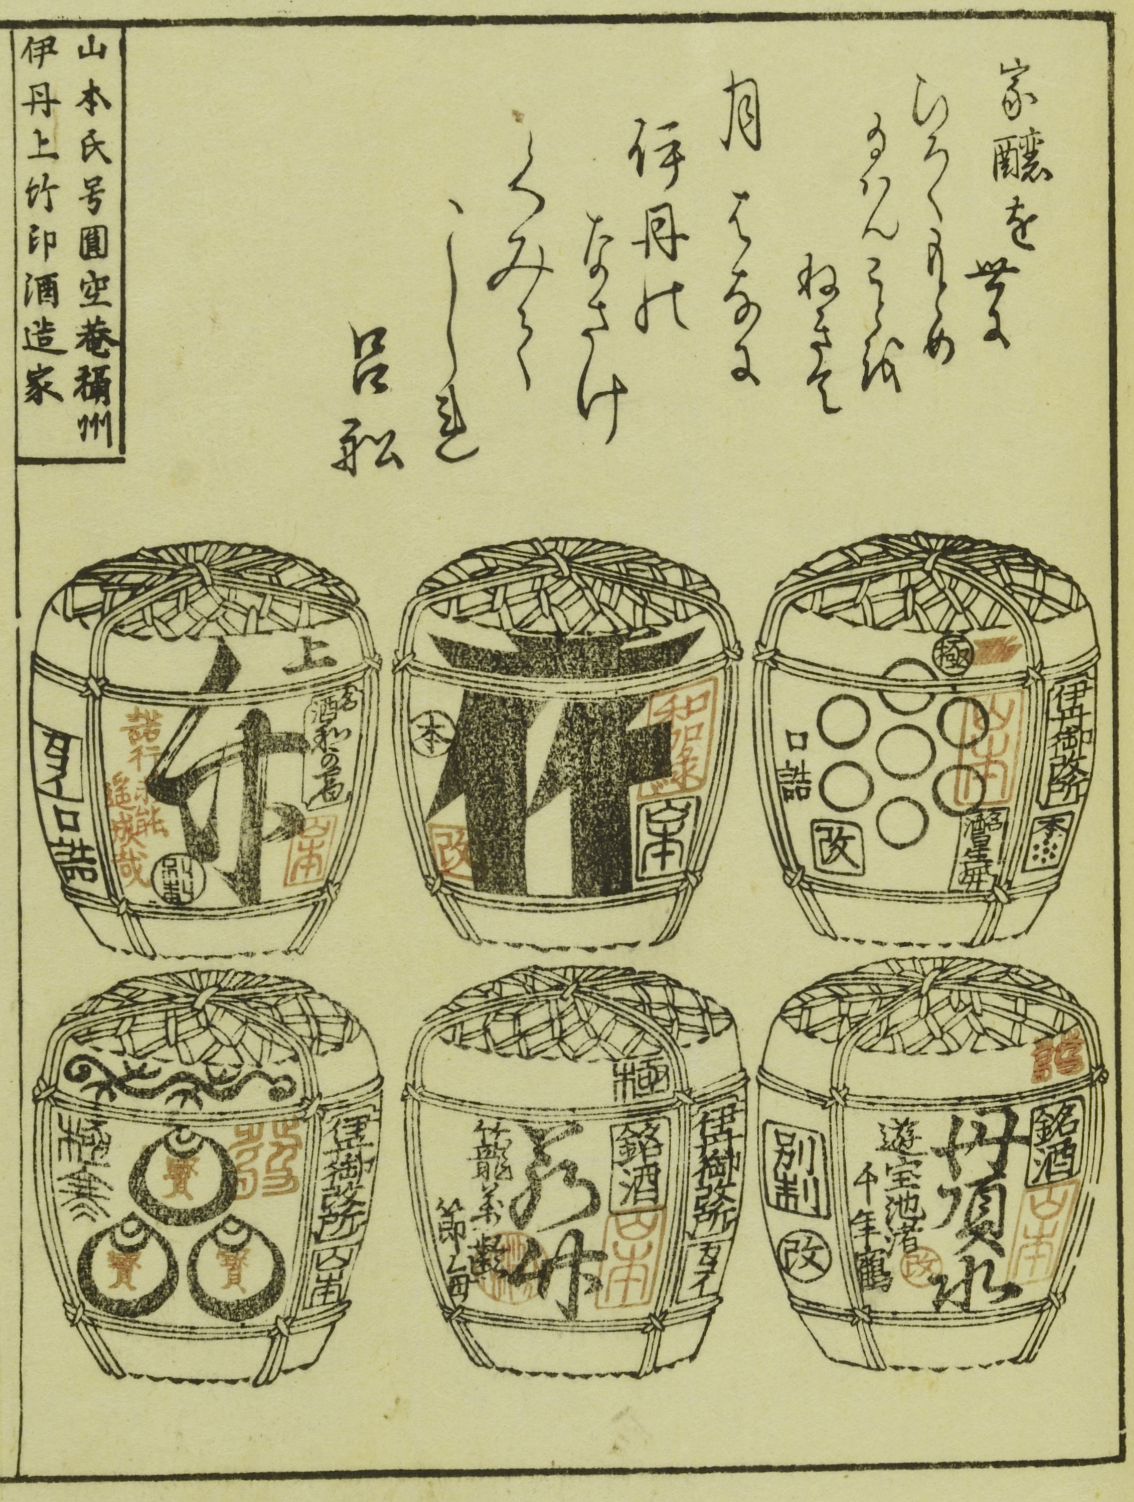 A woodblock print showing different containers of sake, each with their own name and branding.